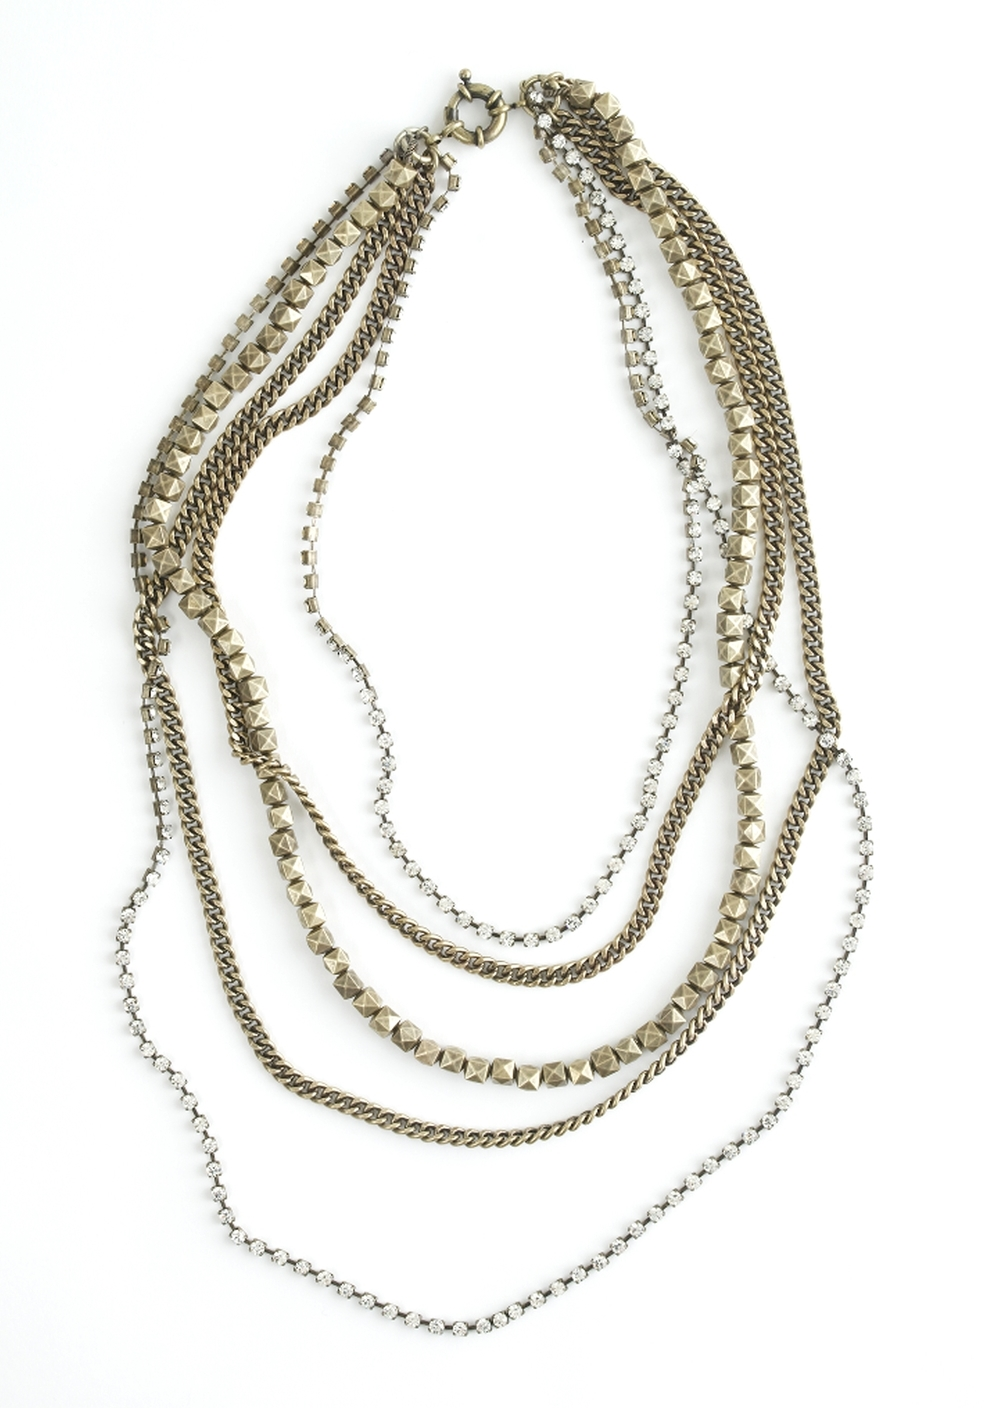 Necklaces2.jpg